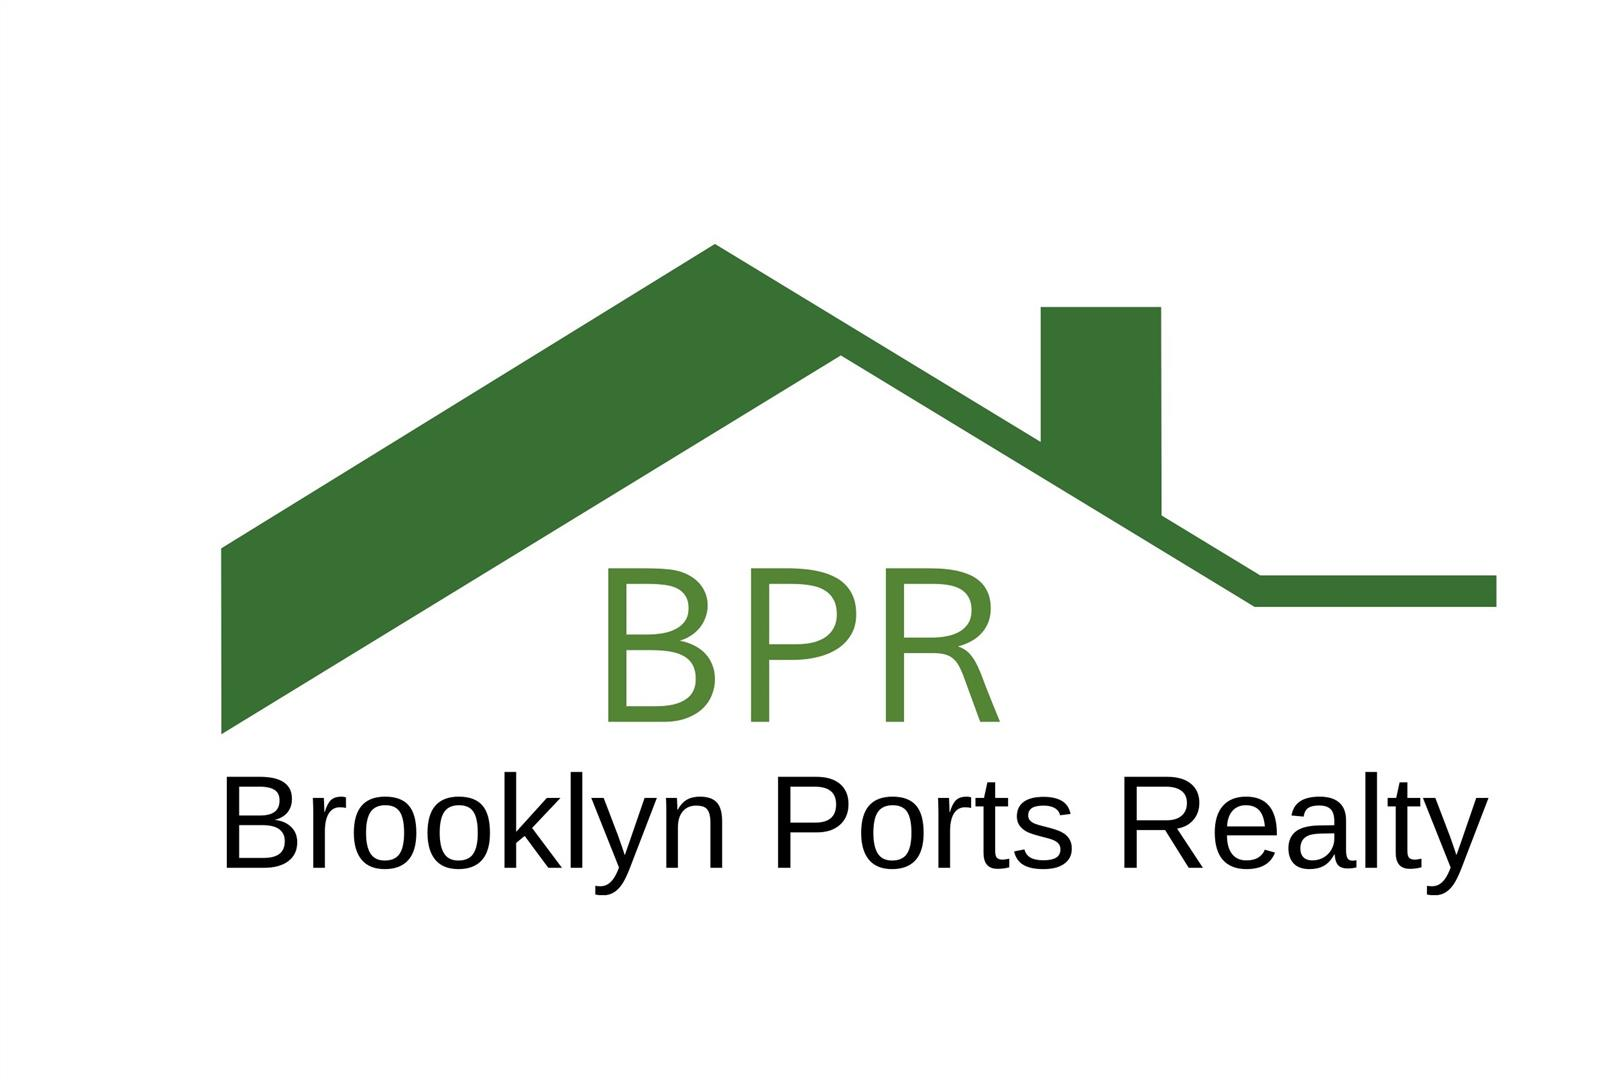 Brooklyn Ports Realty